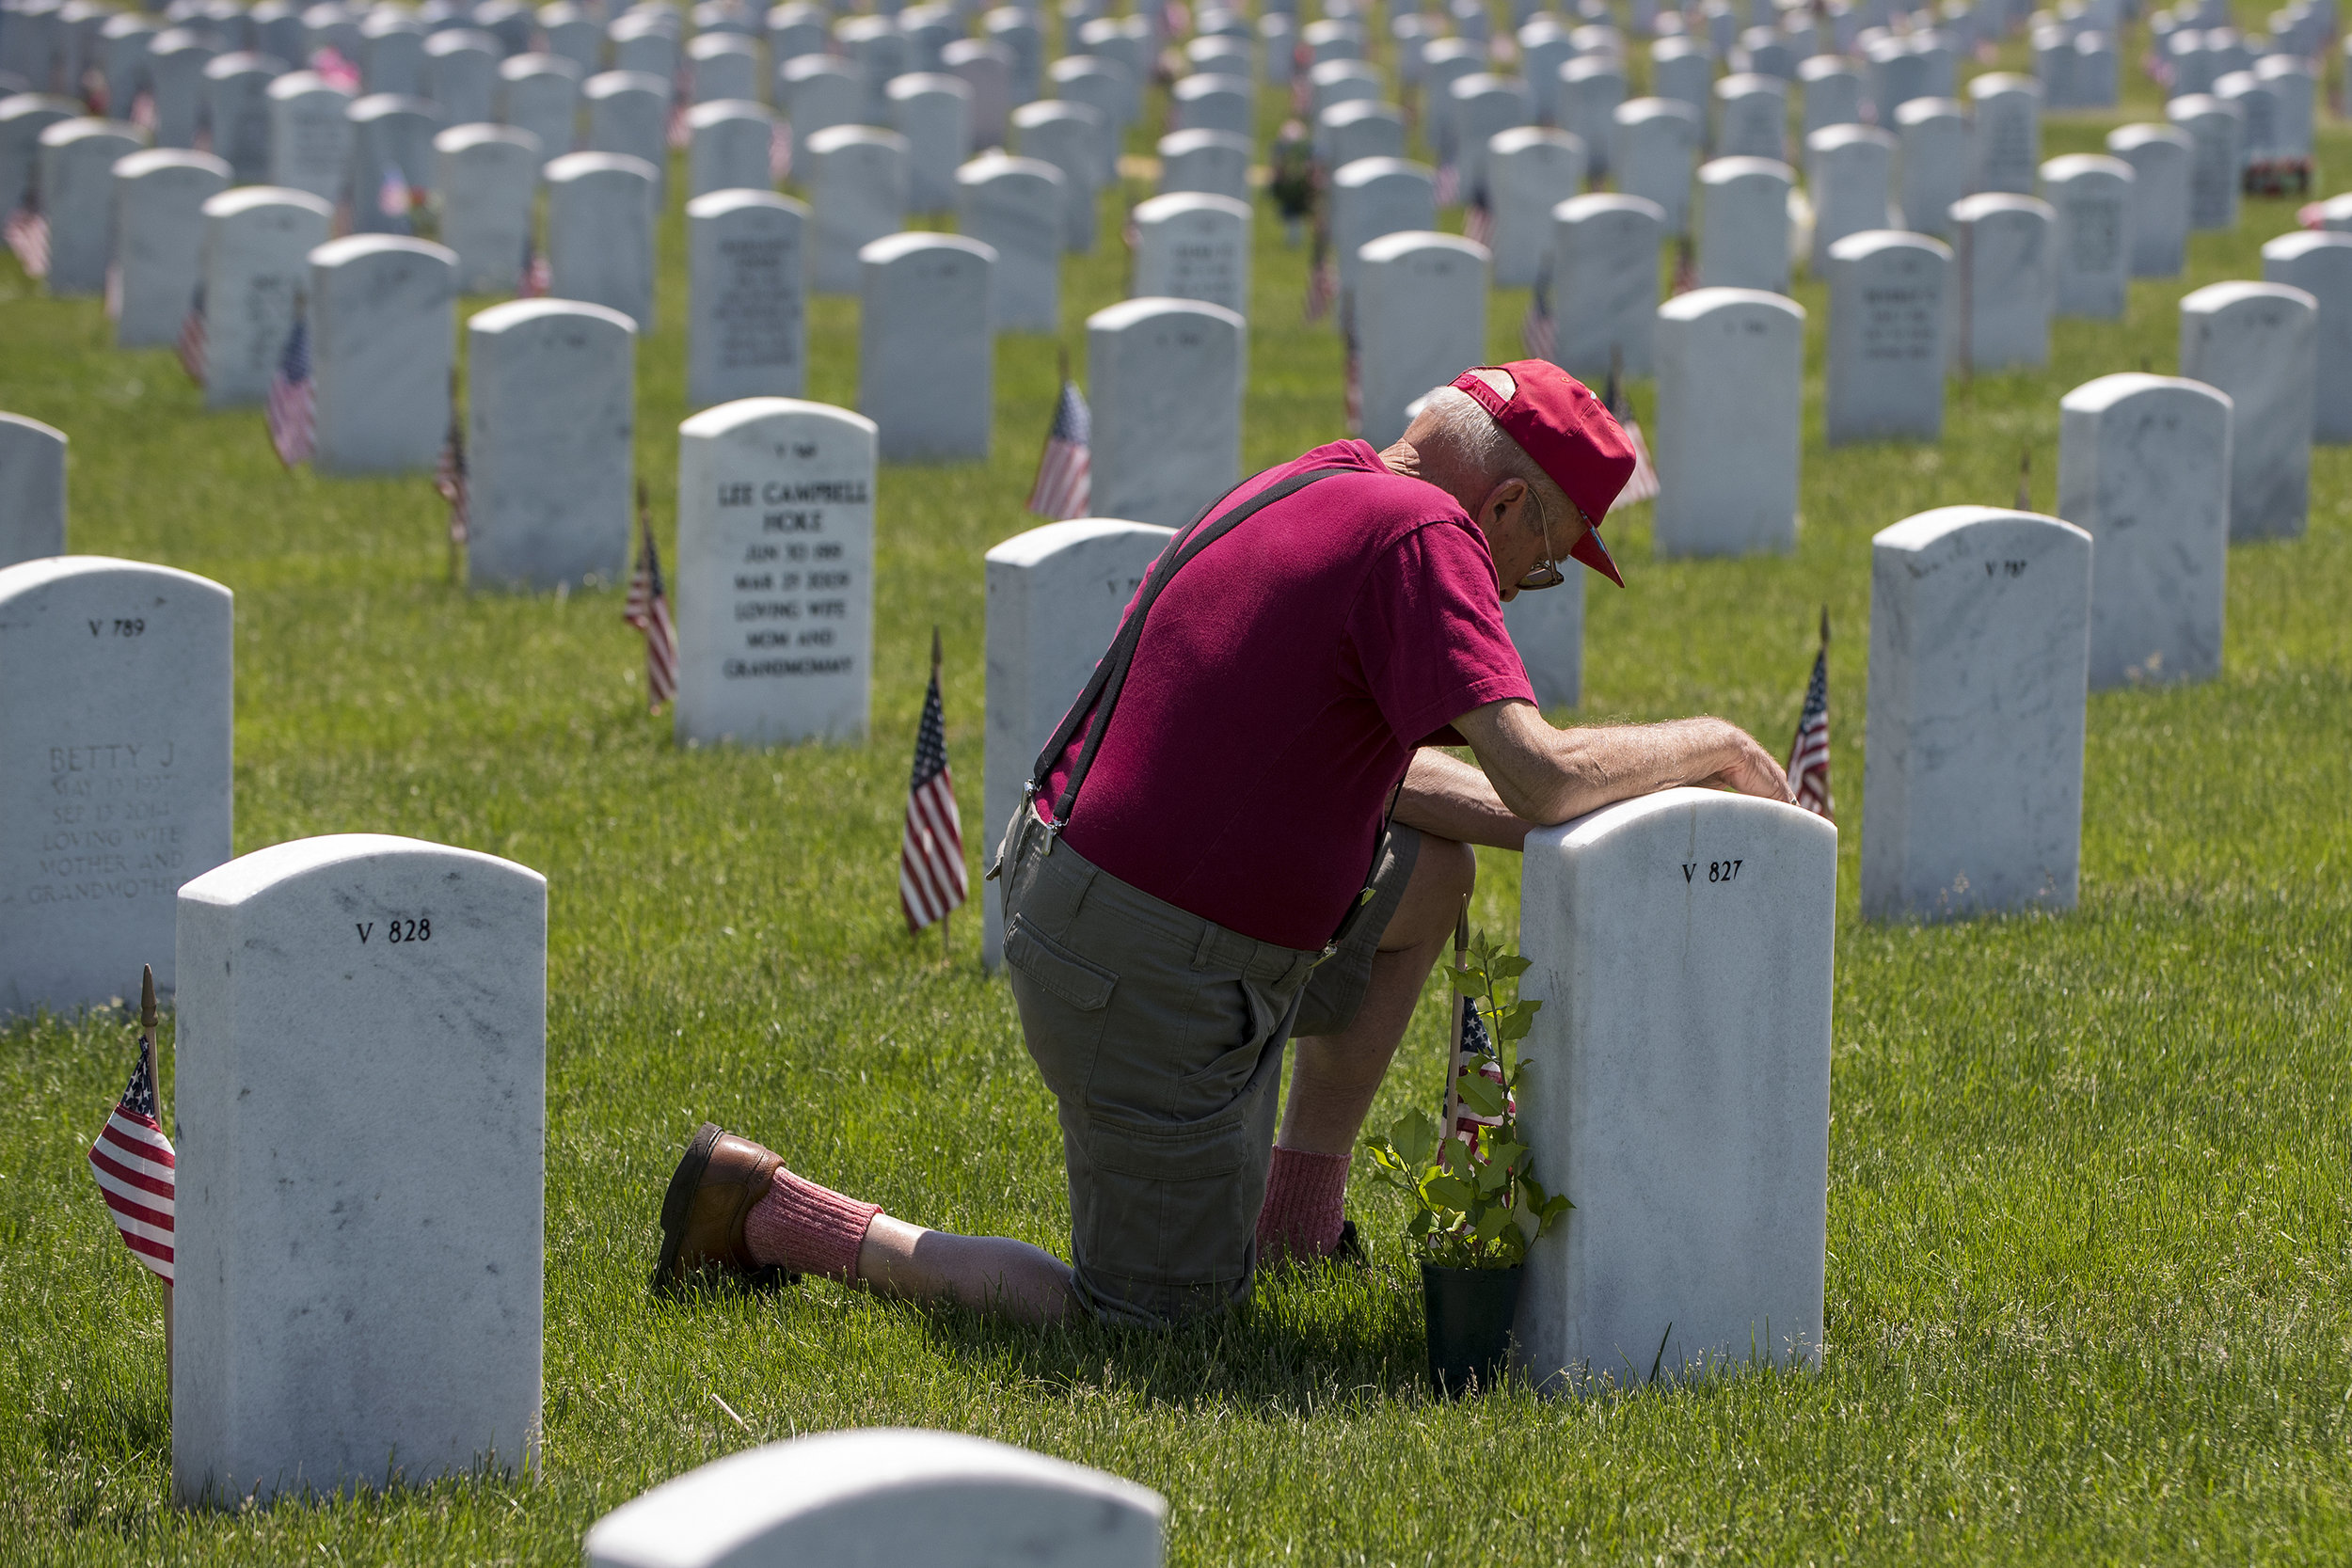 """""""You come to see your loved ones,"""" Army veteran Nicholas Fotiadis of East Moline said after kneeling at the gravestone of his wife Mary Ann Fotiadis. """"I think what [Memorial Day] is supposed to stand for is the important thing. … If you served, I think you deserve this."""" Fotiadis, whose father and brothers also served in the military, placed a yellow rose and an American holly at his wife's grave May 30 at Rock Island National Cemetery. — May 30, 2016, Rock Island Arsenal, Illinois."""